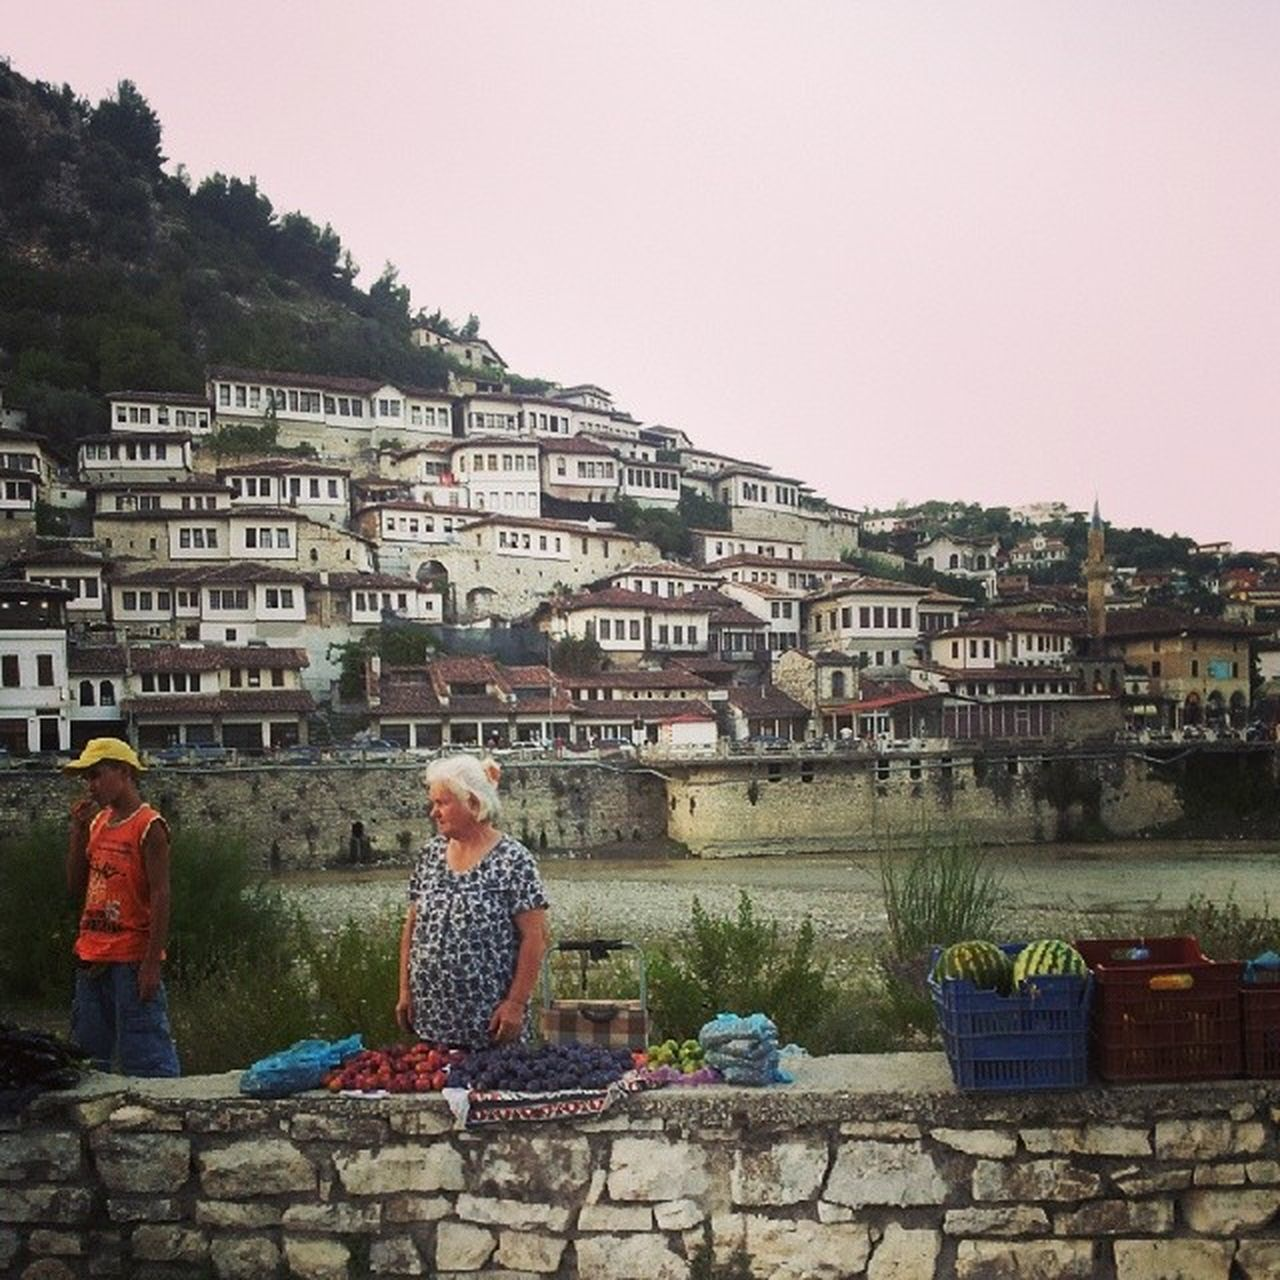 Berat, Albania Albania Visitalbania Berat Travel Destinations Travel Landscape Land Vintage City Street City Life Streetphotography Street Photography City Urban Landscape City View  Cityscapes Urban Town People